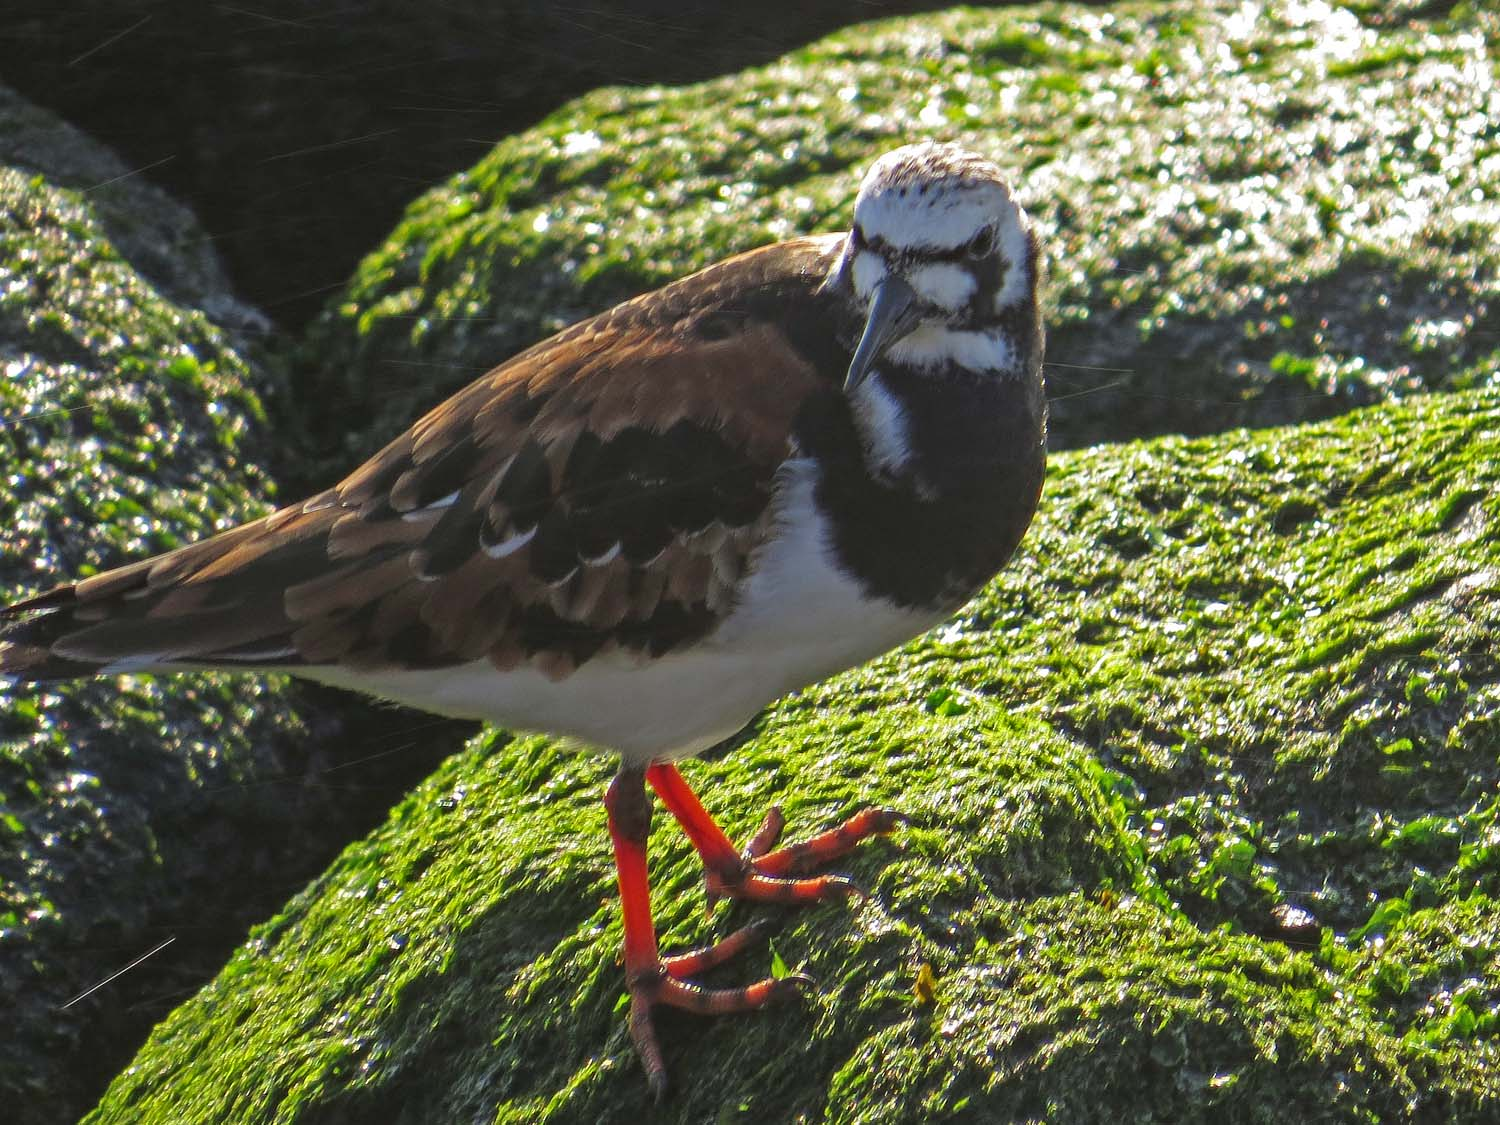 Ruddy turnstone, May 14, Rockaway Tribute Park